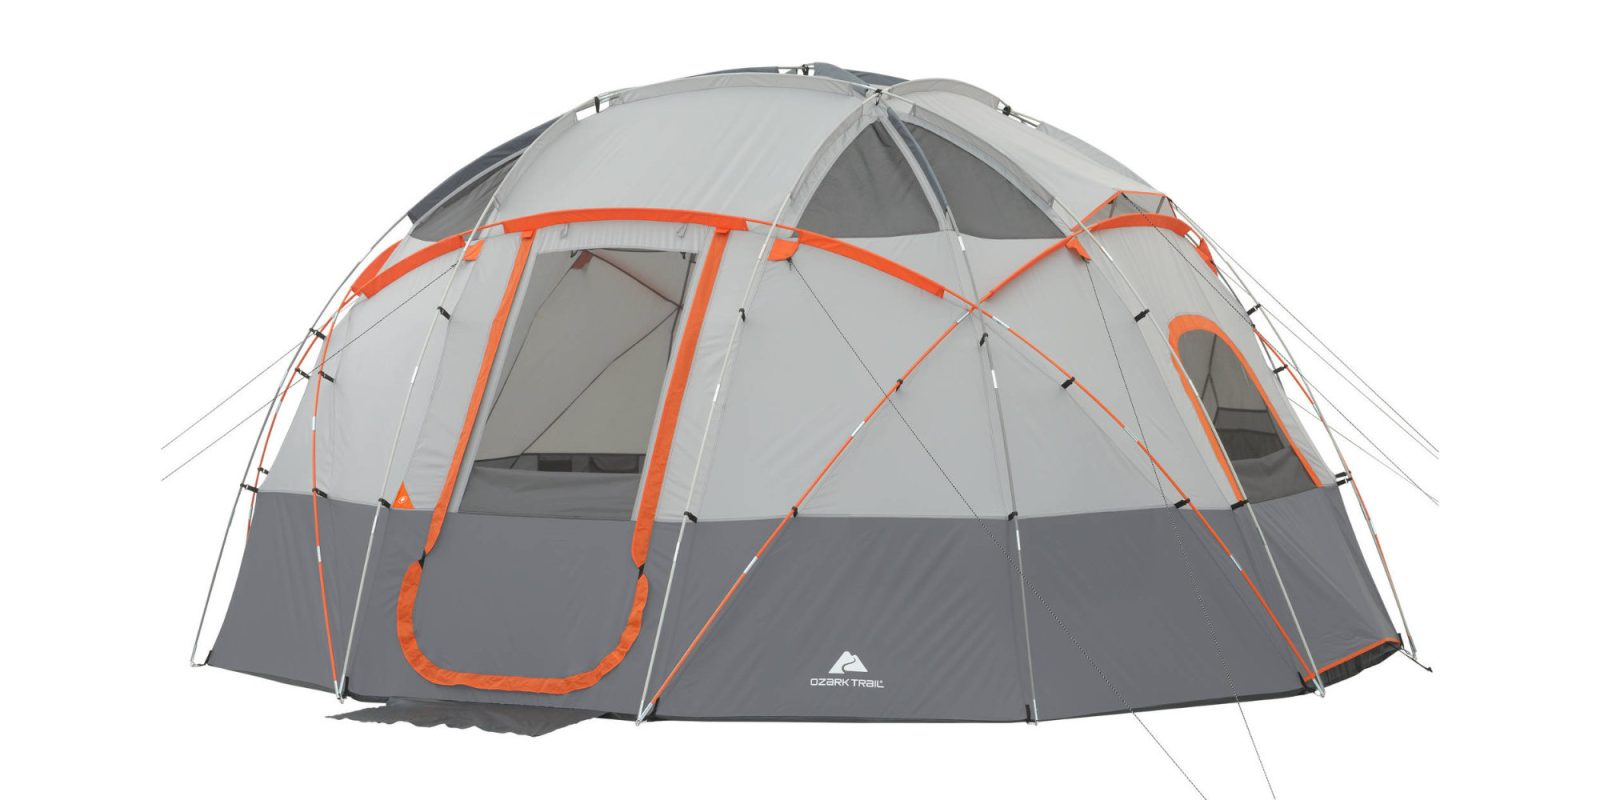 Ozark Trail's 12-Person Sphere Tent hits all-time low of $95 (Reg. $165)